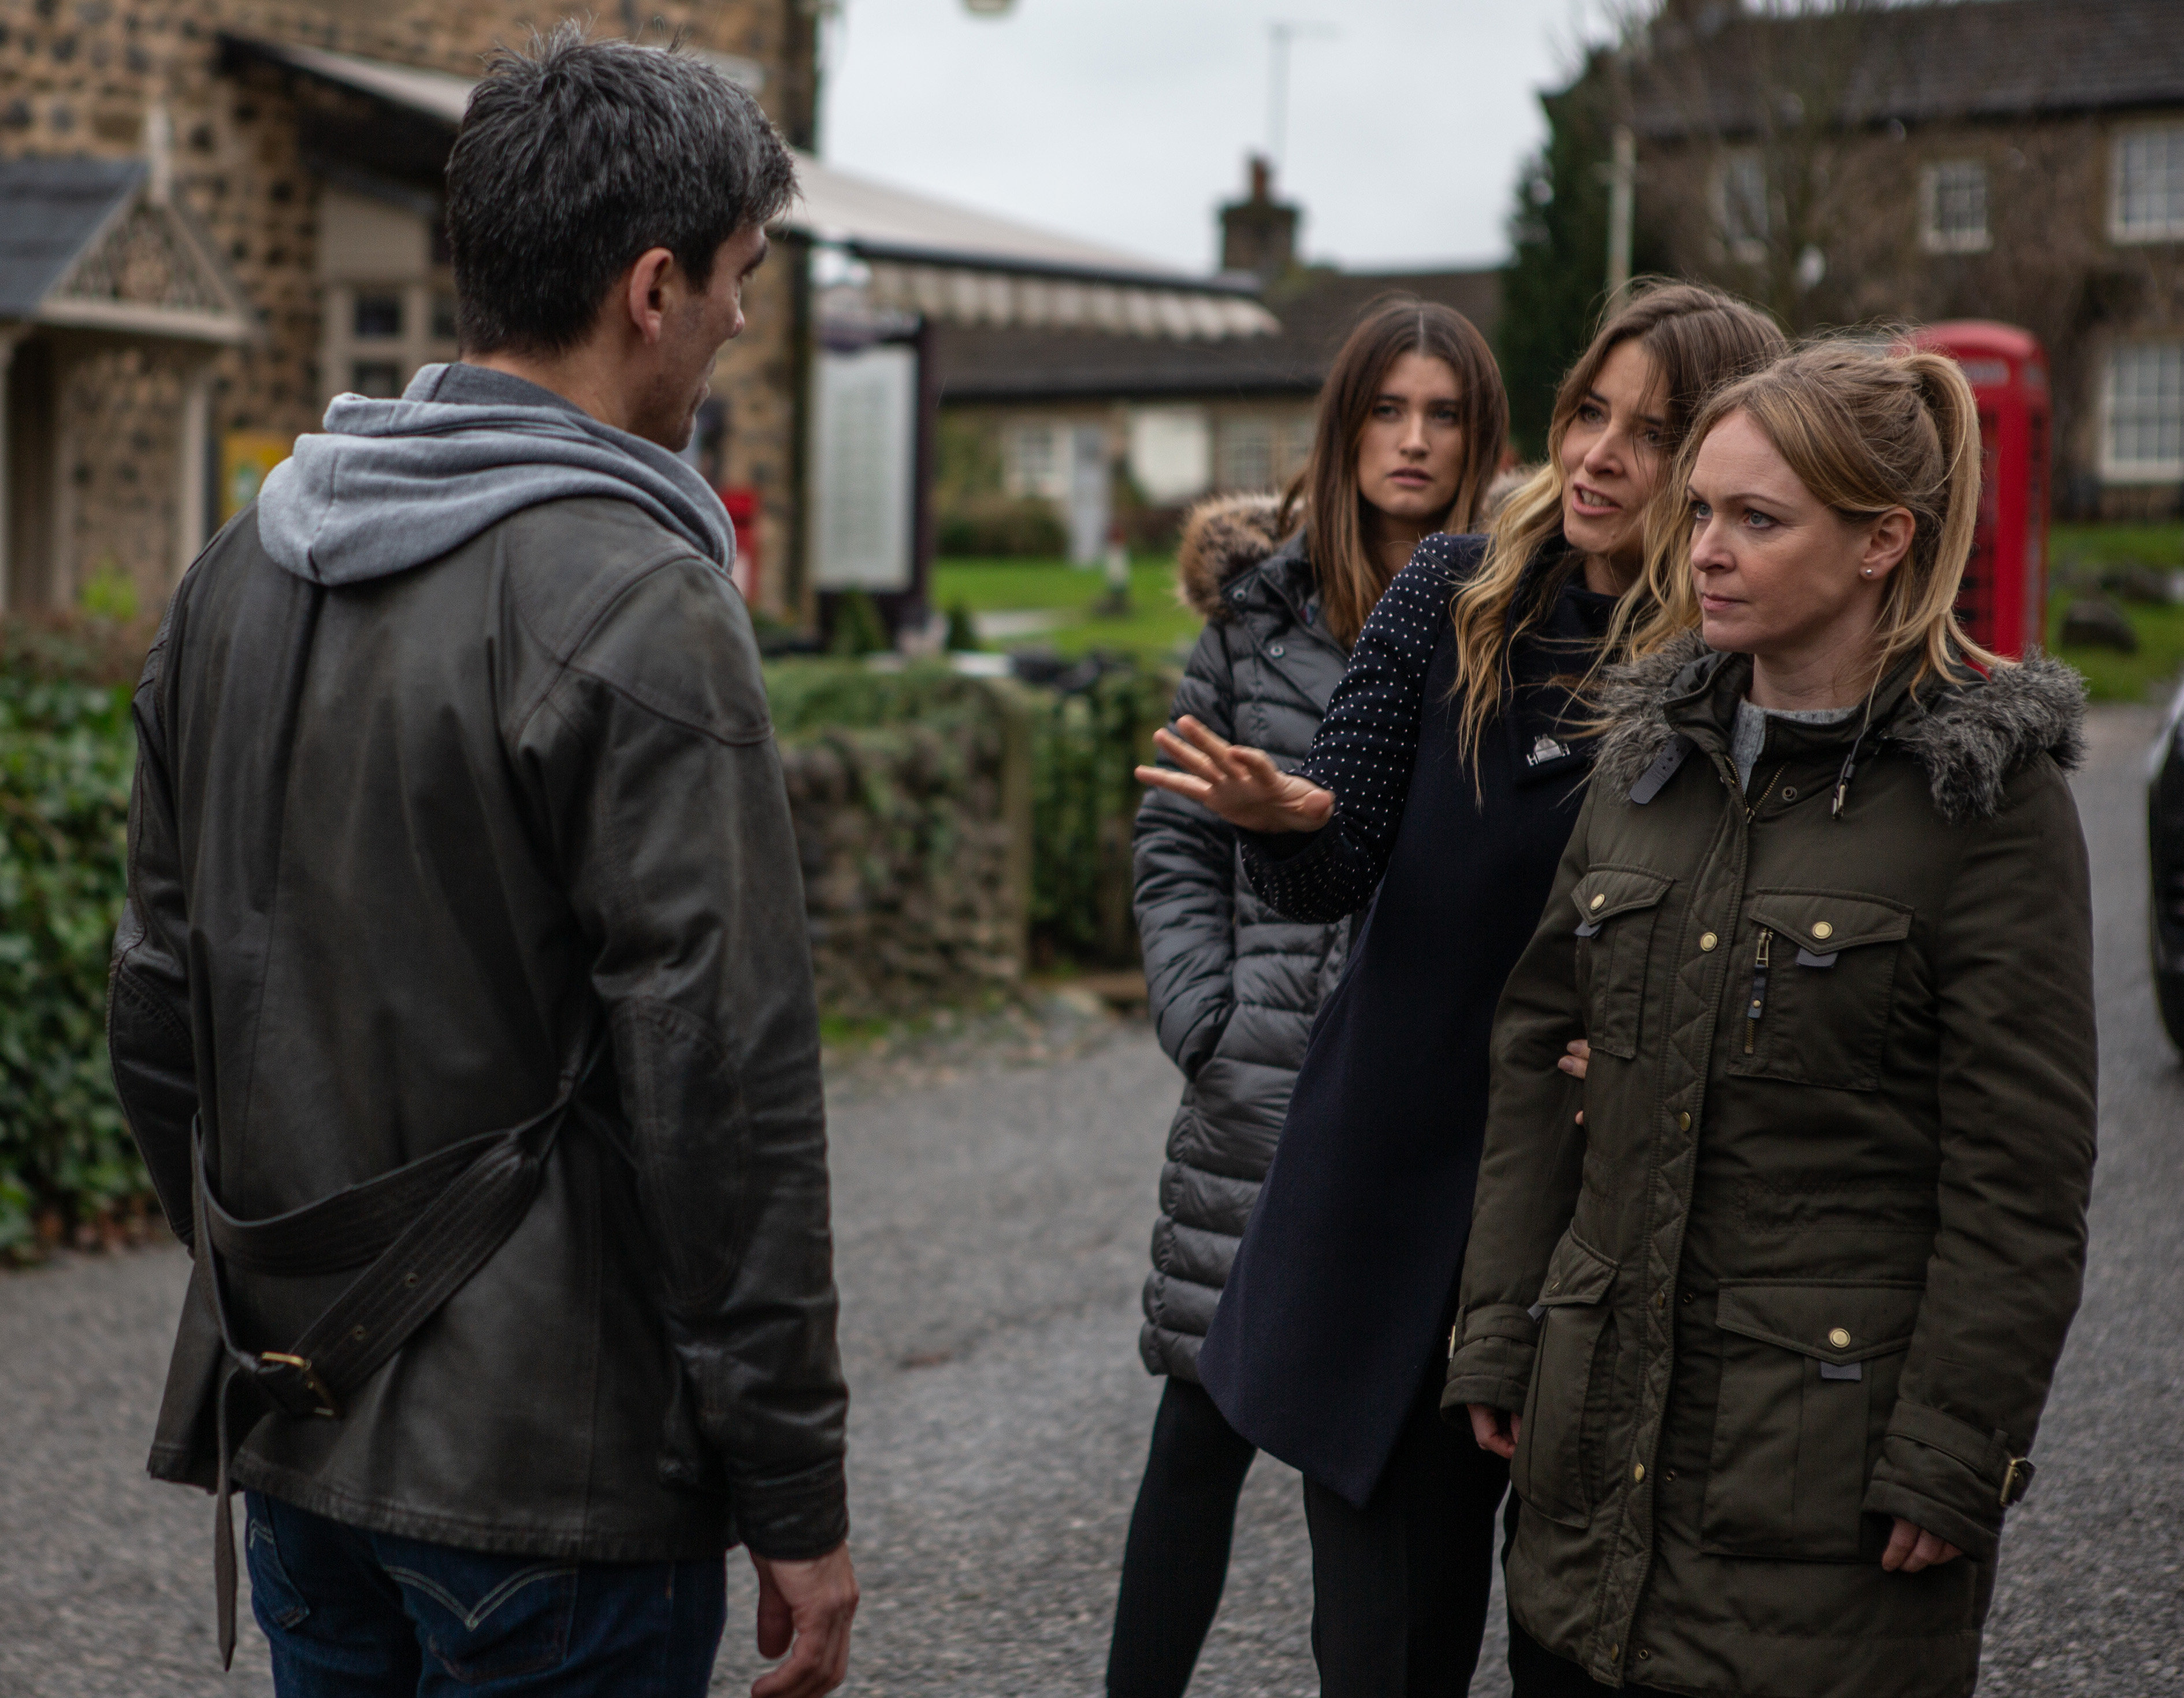 Emmerdale spoilers: Emma Atkins reflects on whether Vanessa or Cain is Charity's soulmate